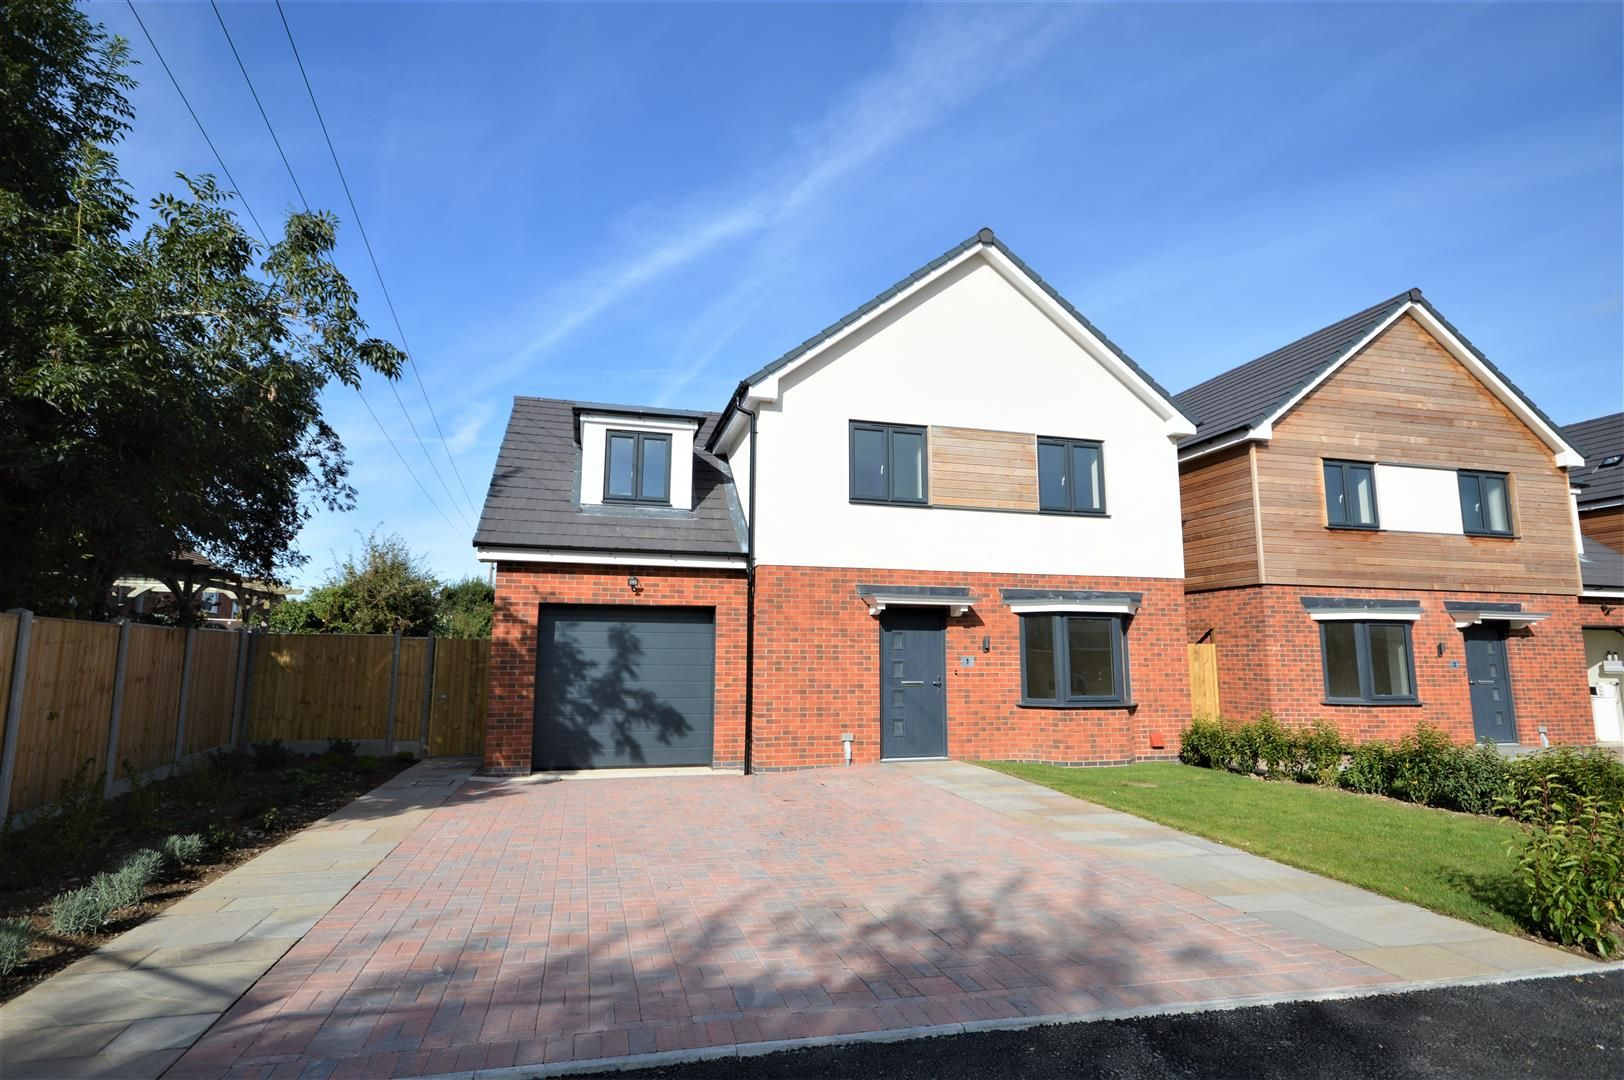 4 bed detached for sale in Kingsland - Property Image 1